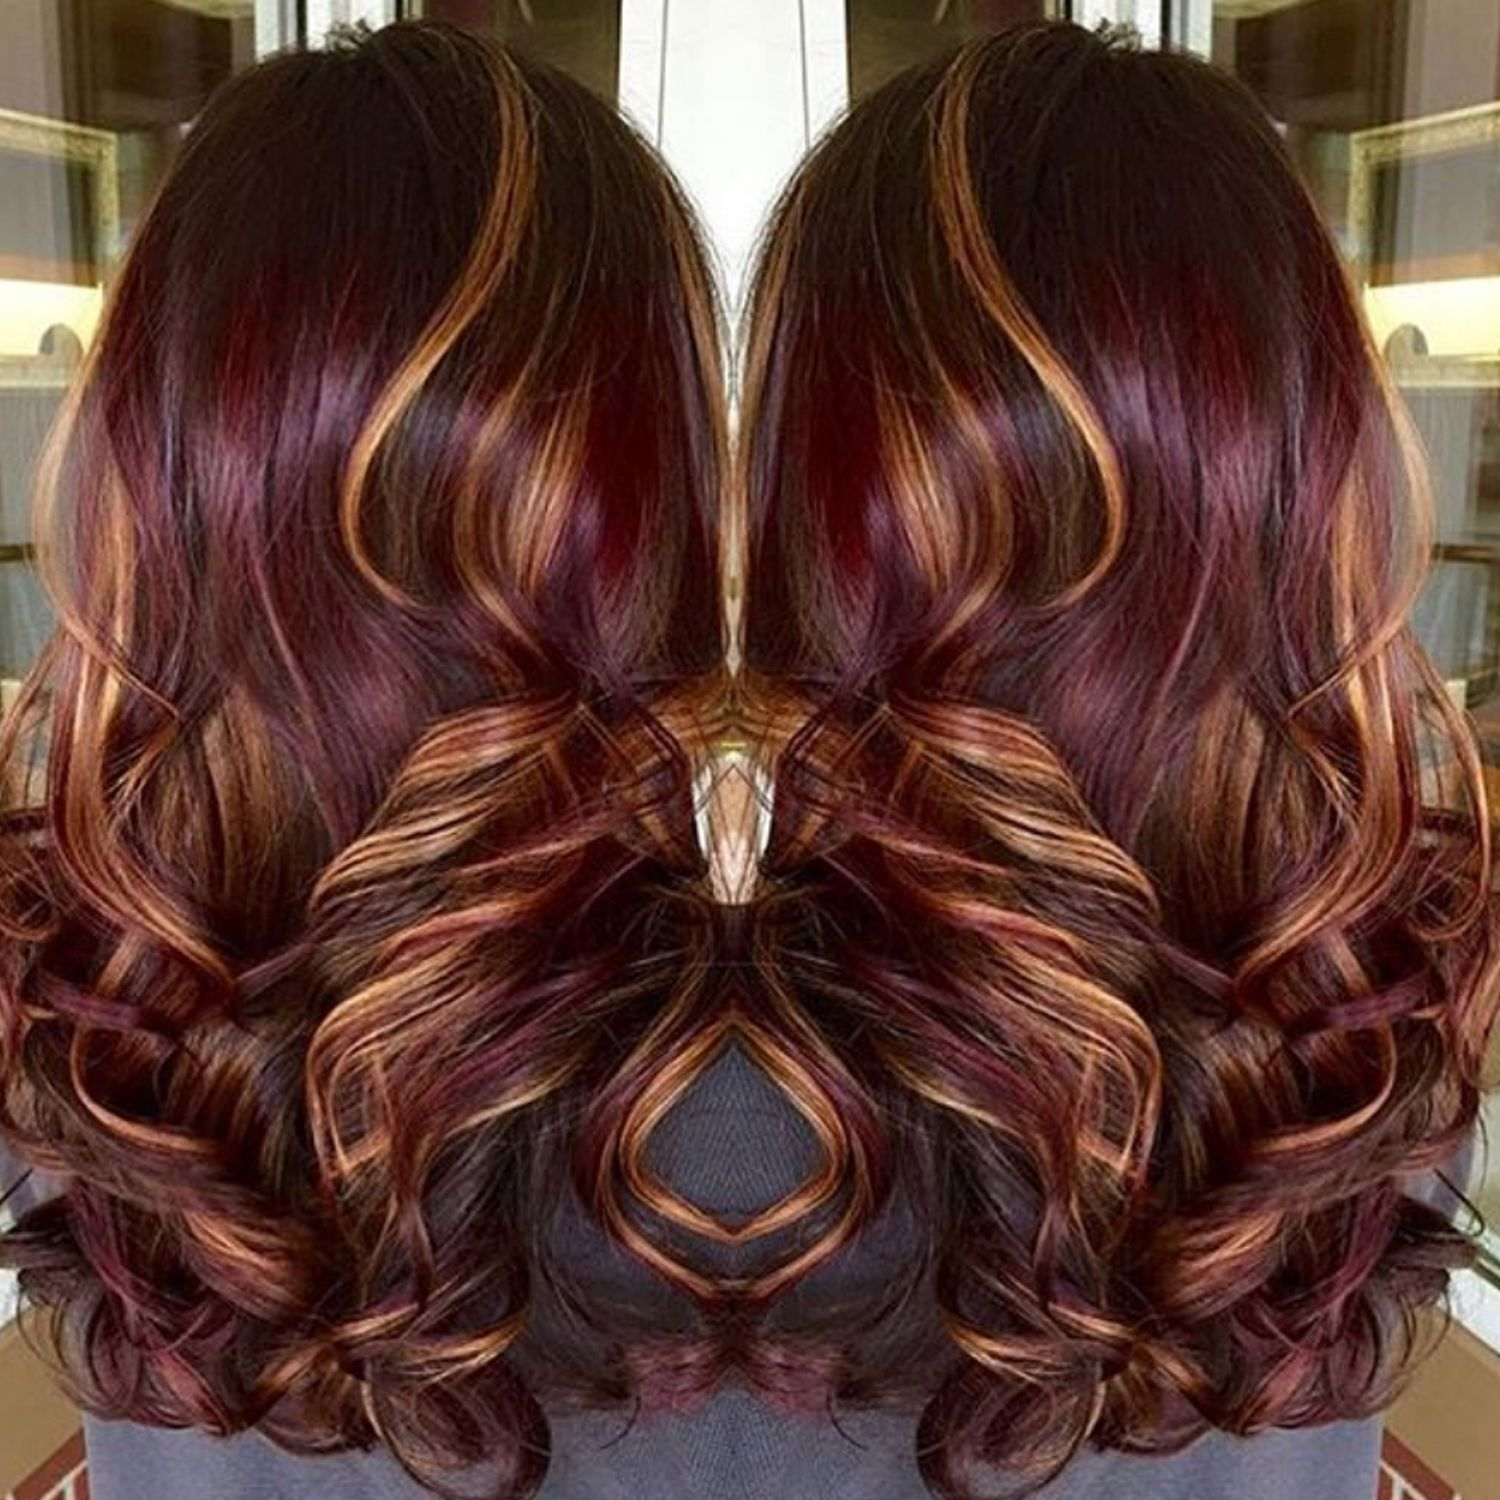 10 Ultra Cool Shades Of Winter Hair Color 2020 Ultimate Guide Hair Styles Burgundy Hair Hair Highlights